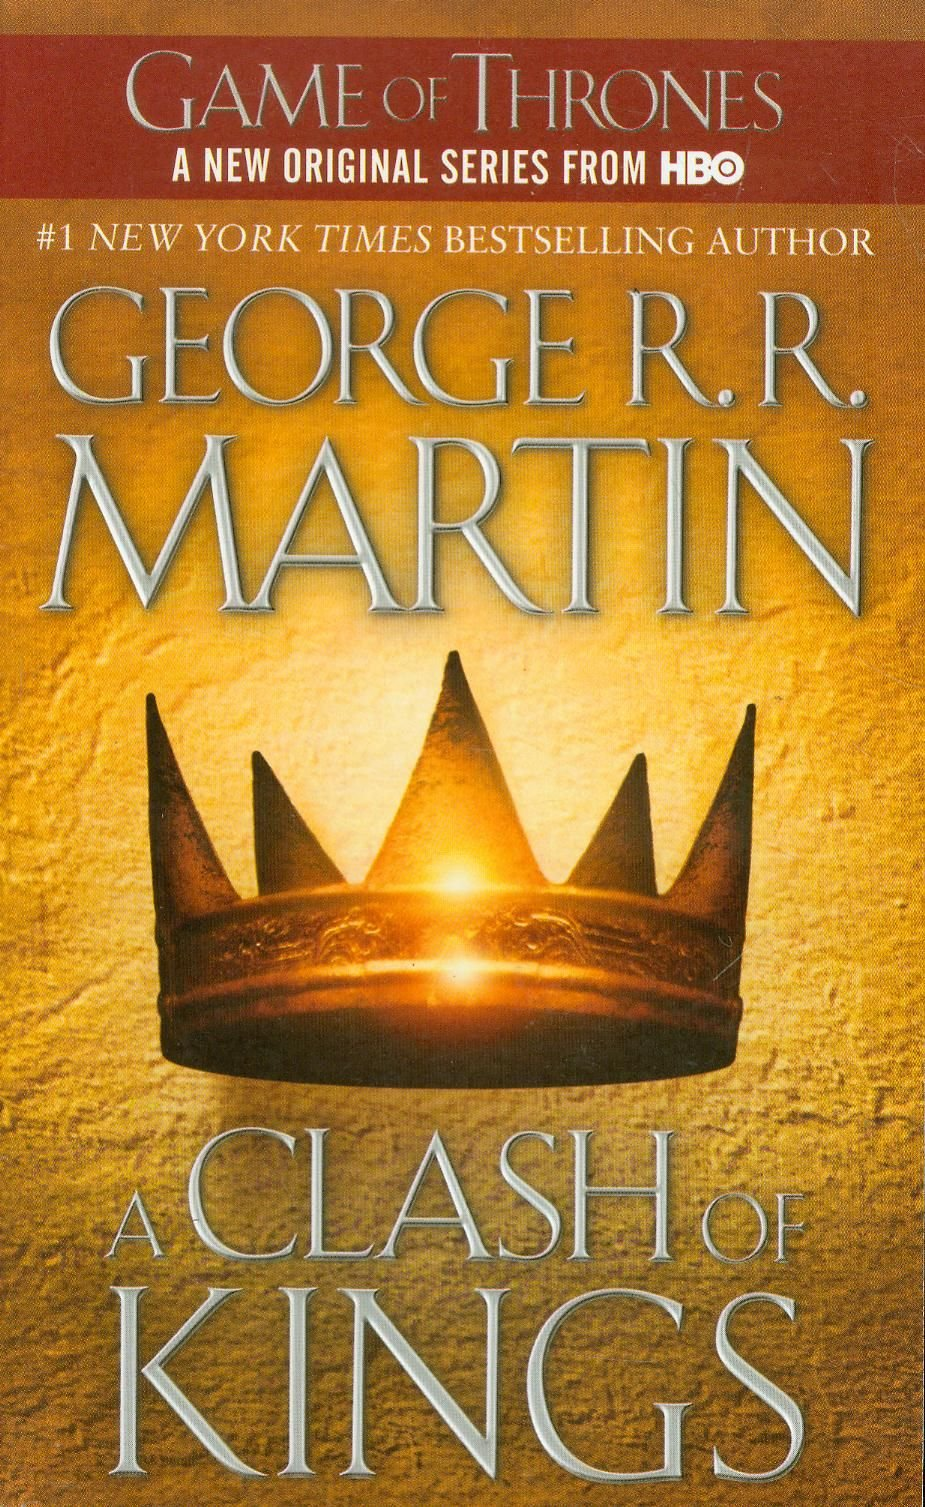 a clash of kings a song of ice and fire book george r r a clash of kings a song of ice and fire book 2 george r r martin 9780553579901 com books